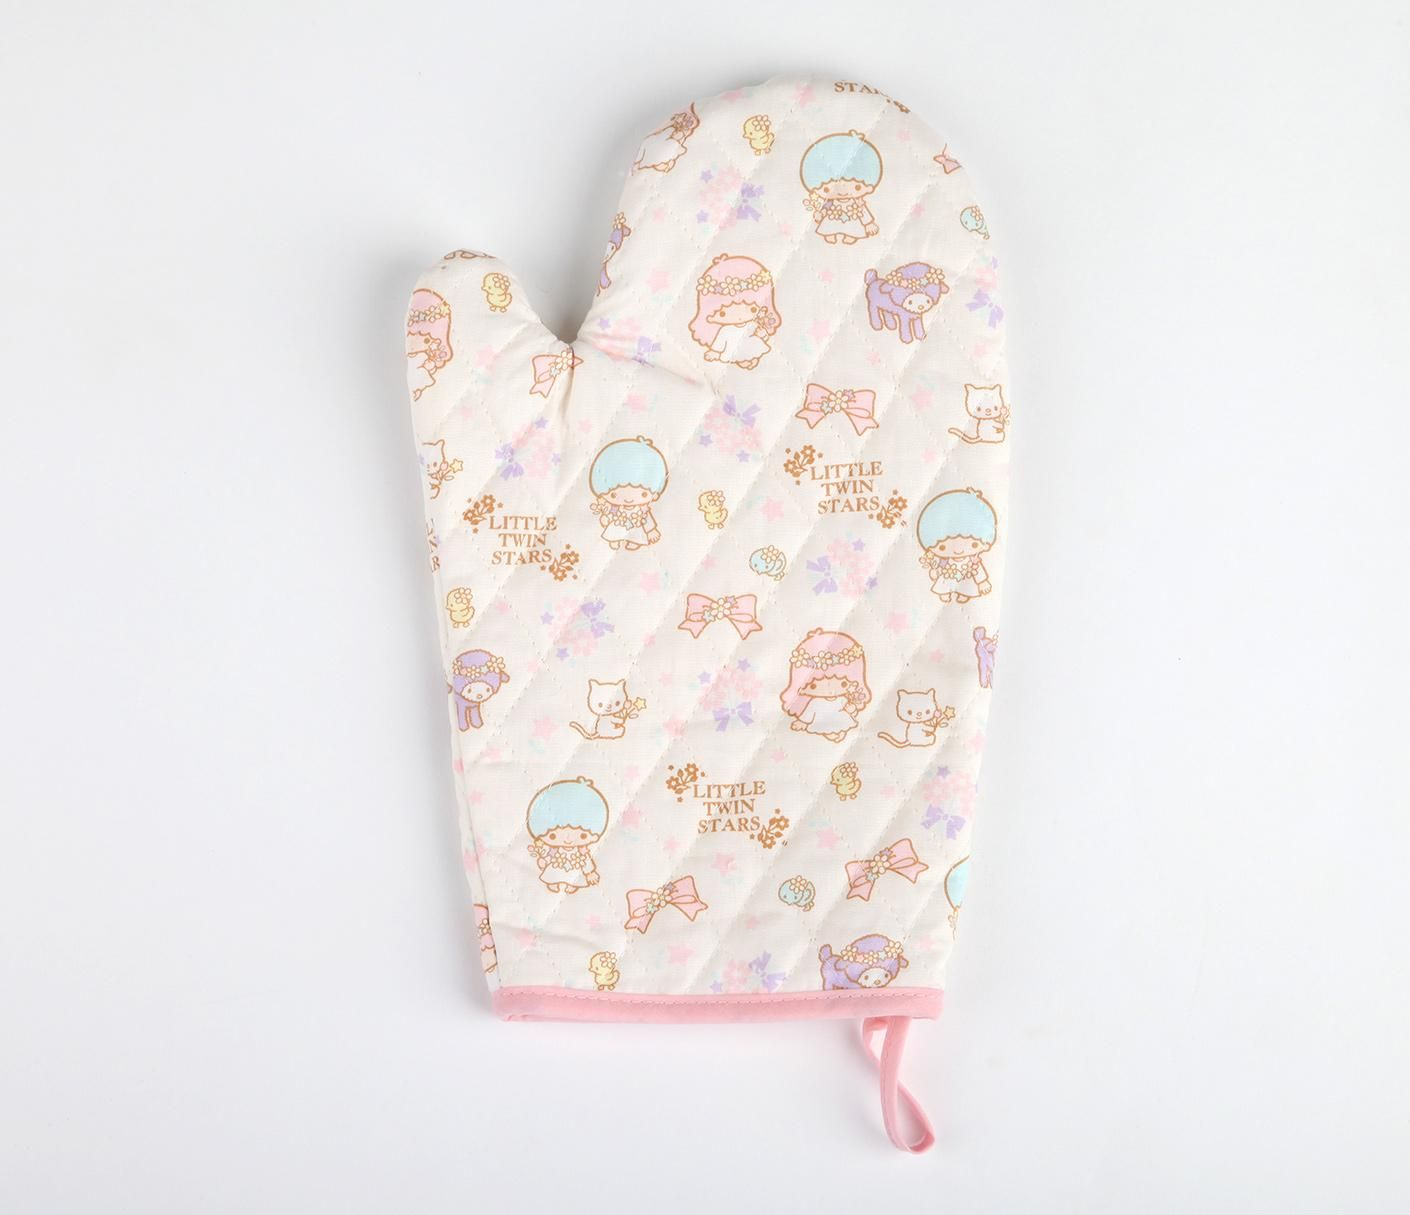 Little Twin Stars Kitchen Mitten Floral  Sanrio Kitchen Interesting Kitchen Mittens Design Inspiration